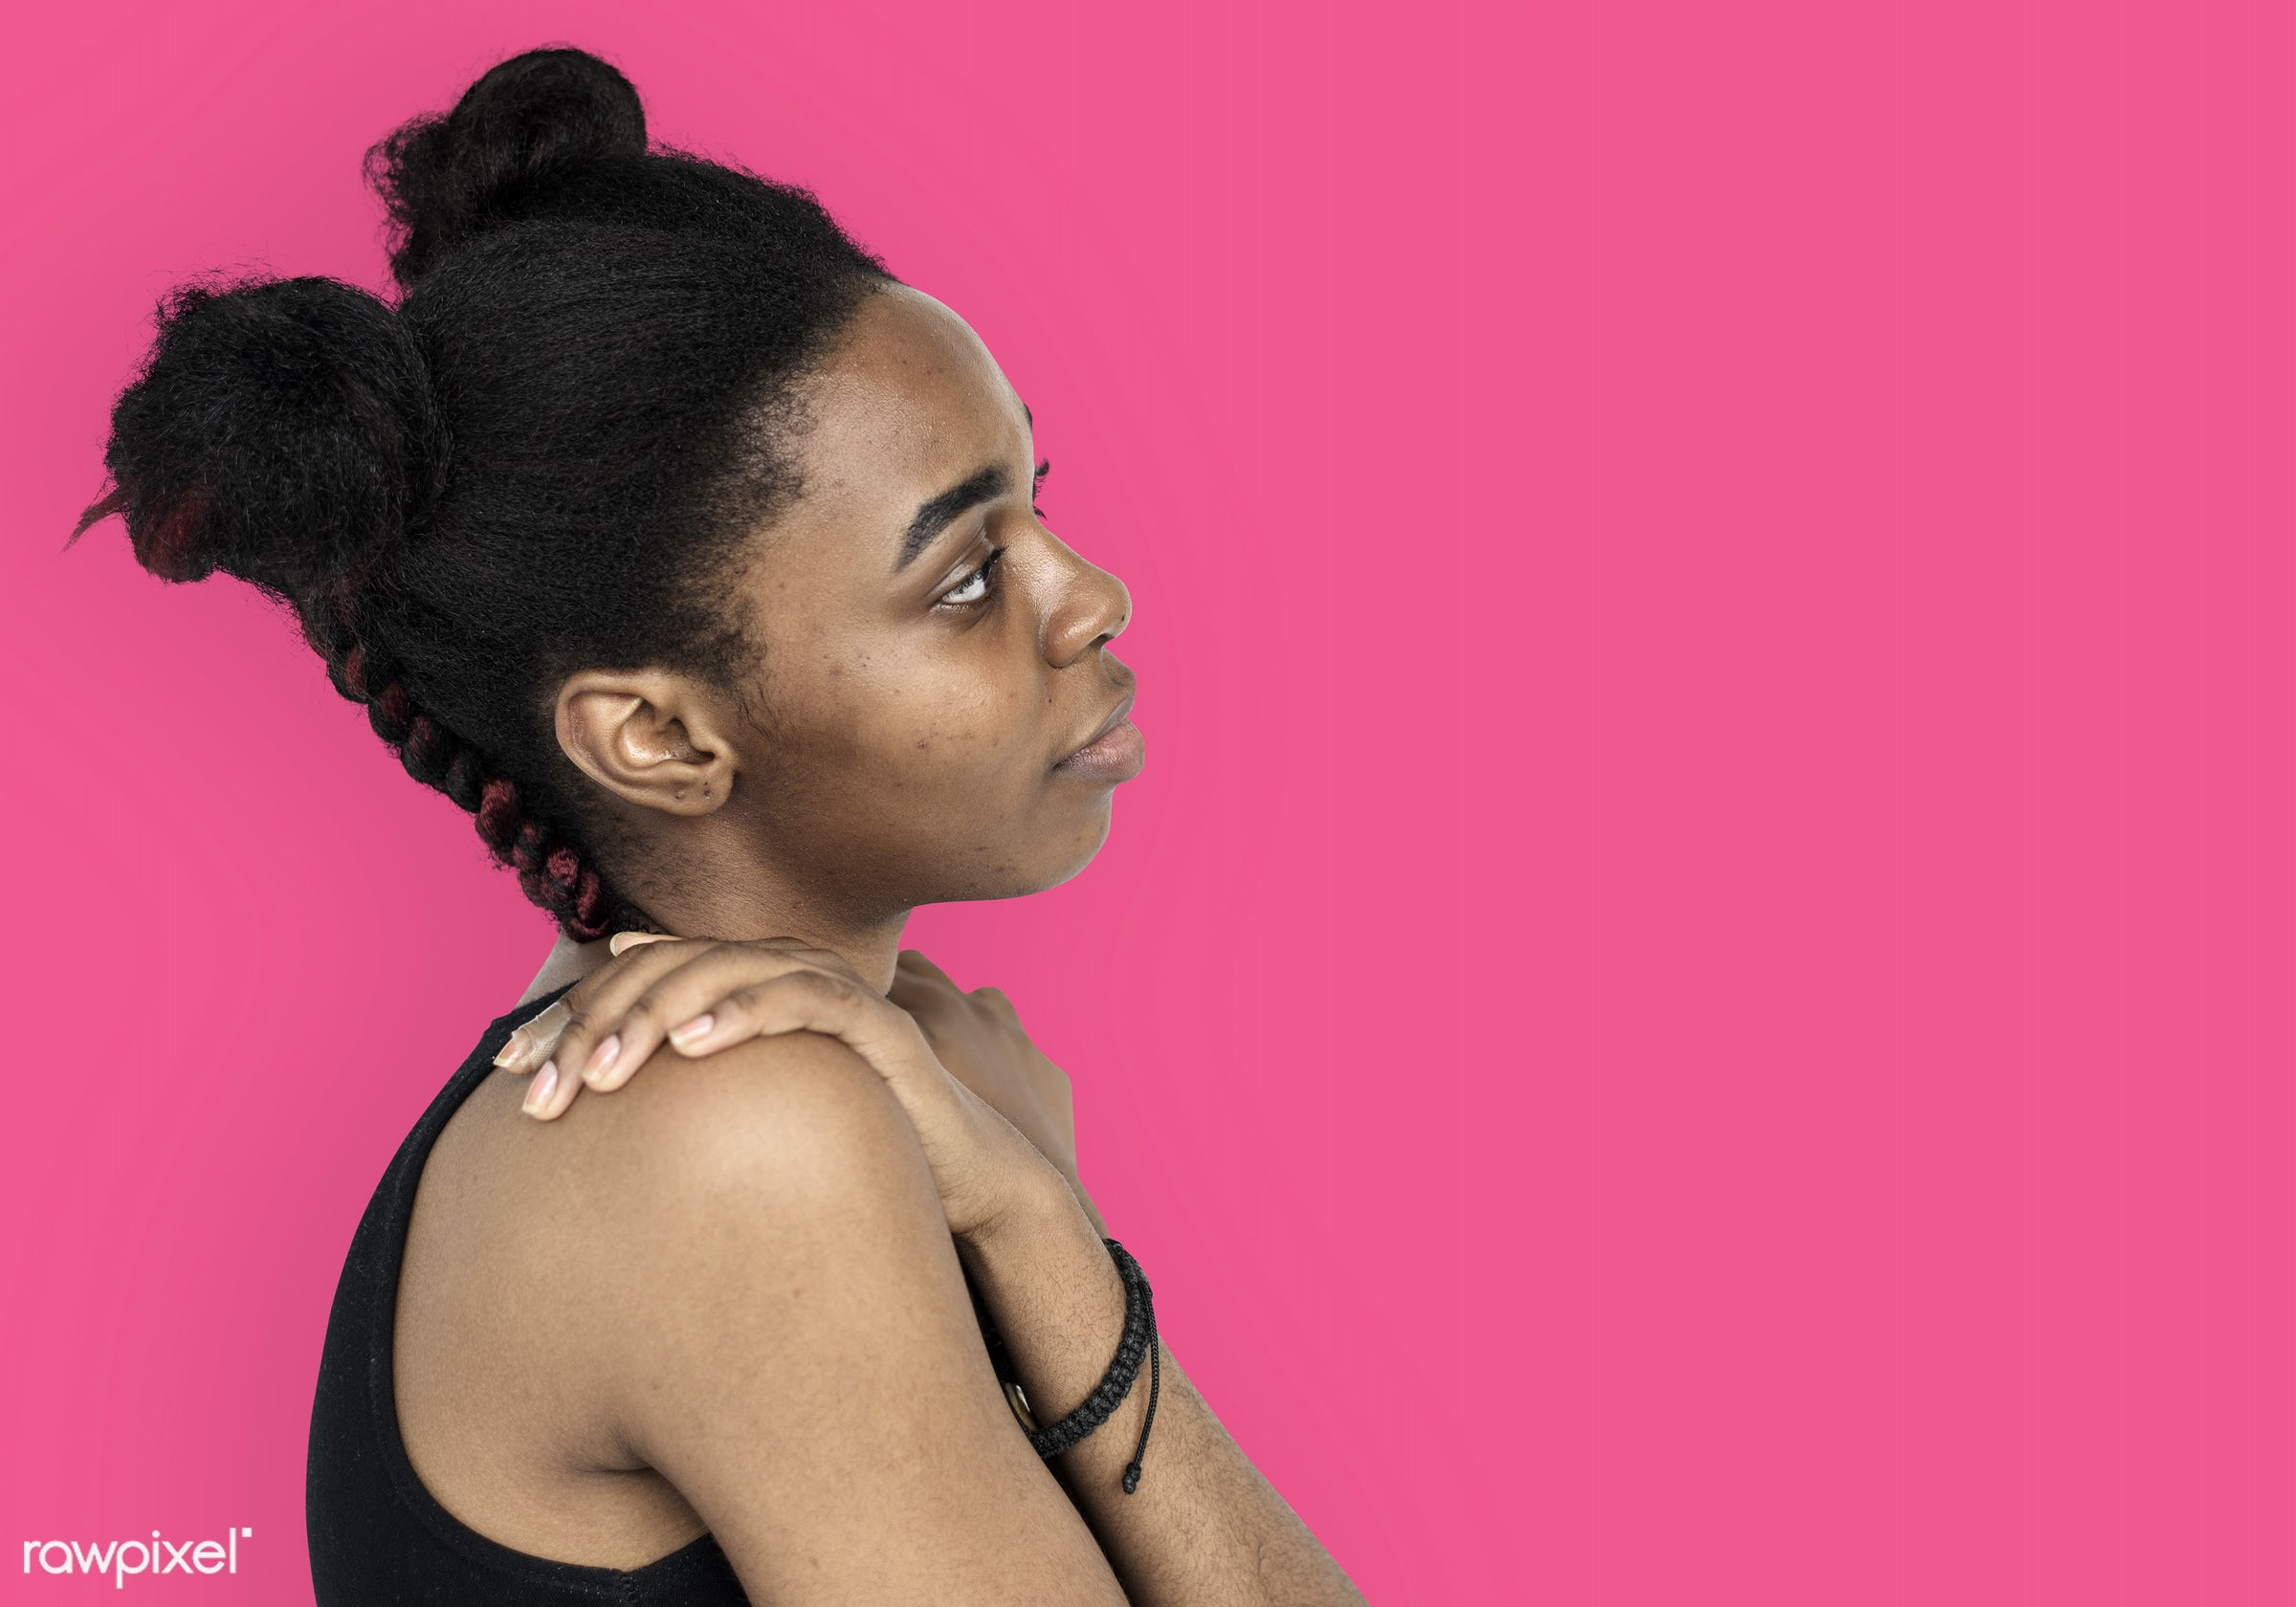 studio, model, person, people, race, style, solo, woman, lifestyle, casual, pink, feminism, isolated, african descent,...